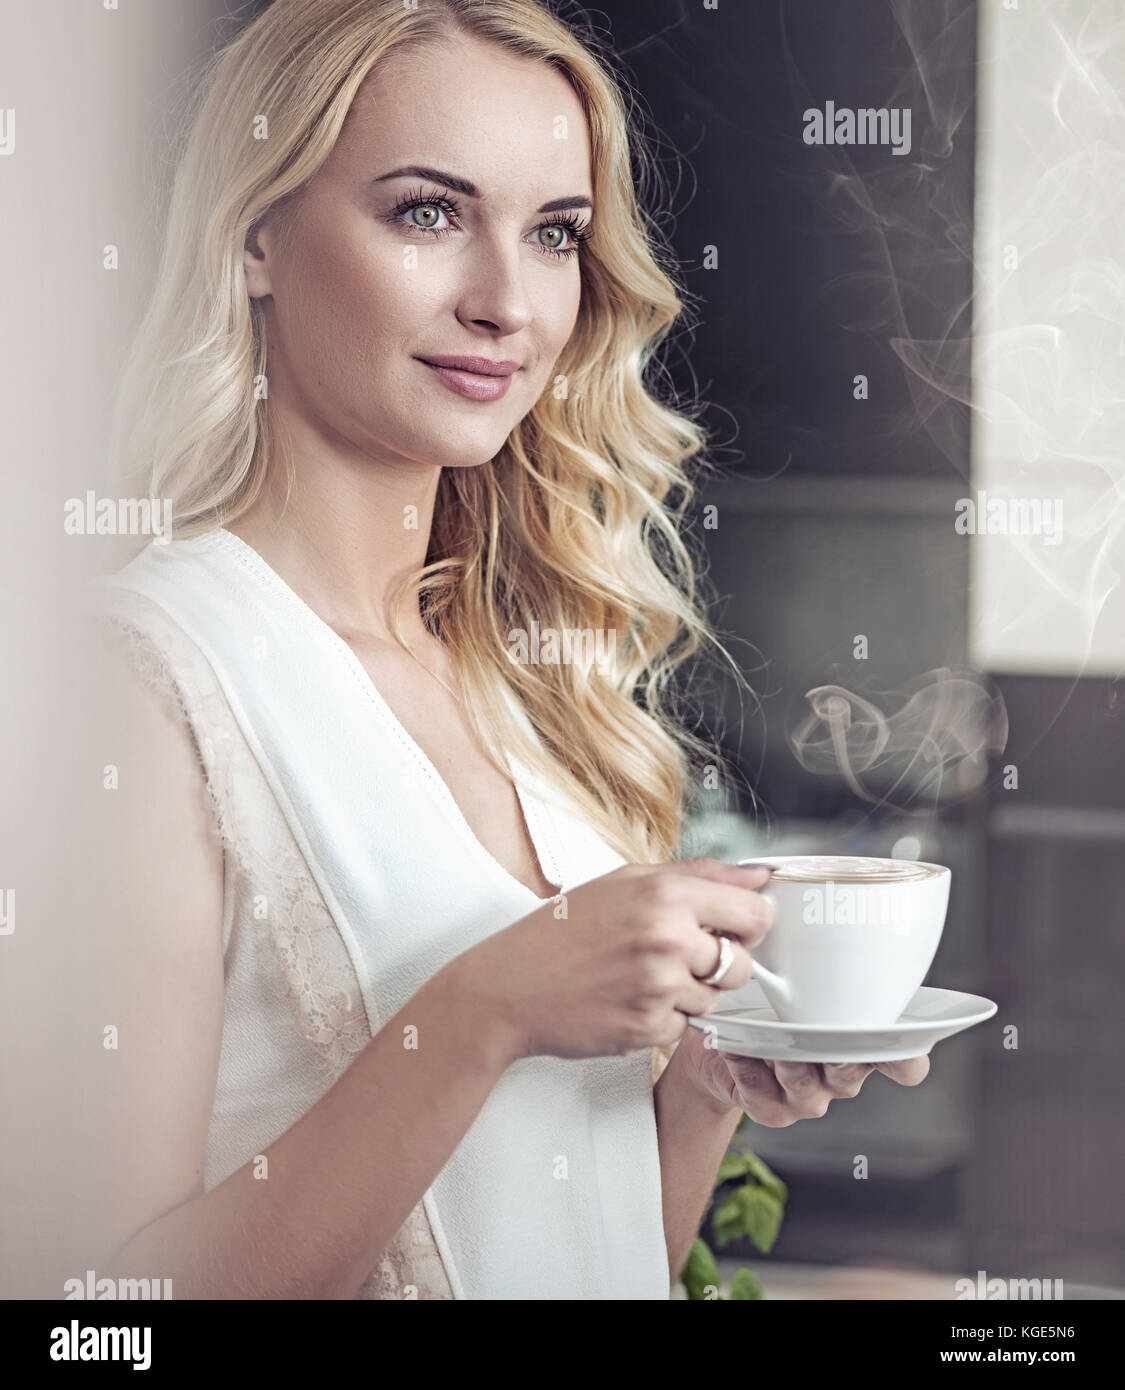 Portrait of a pretty blond lady drinking a cup of coffee - Stock Image